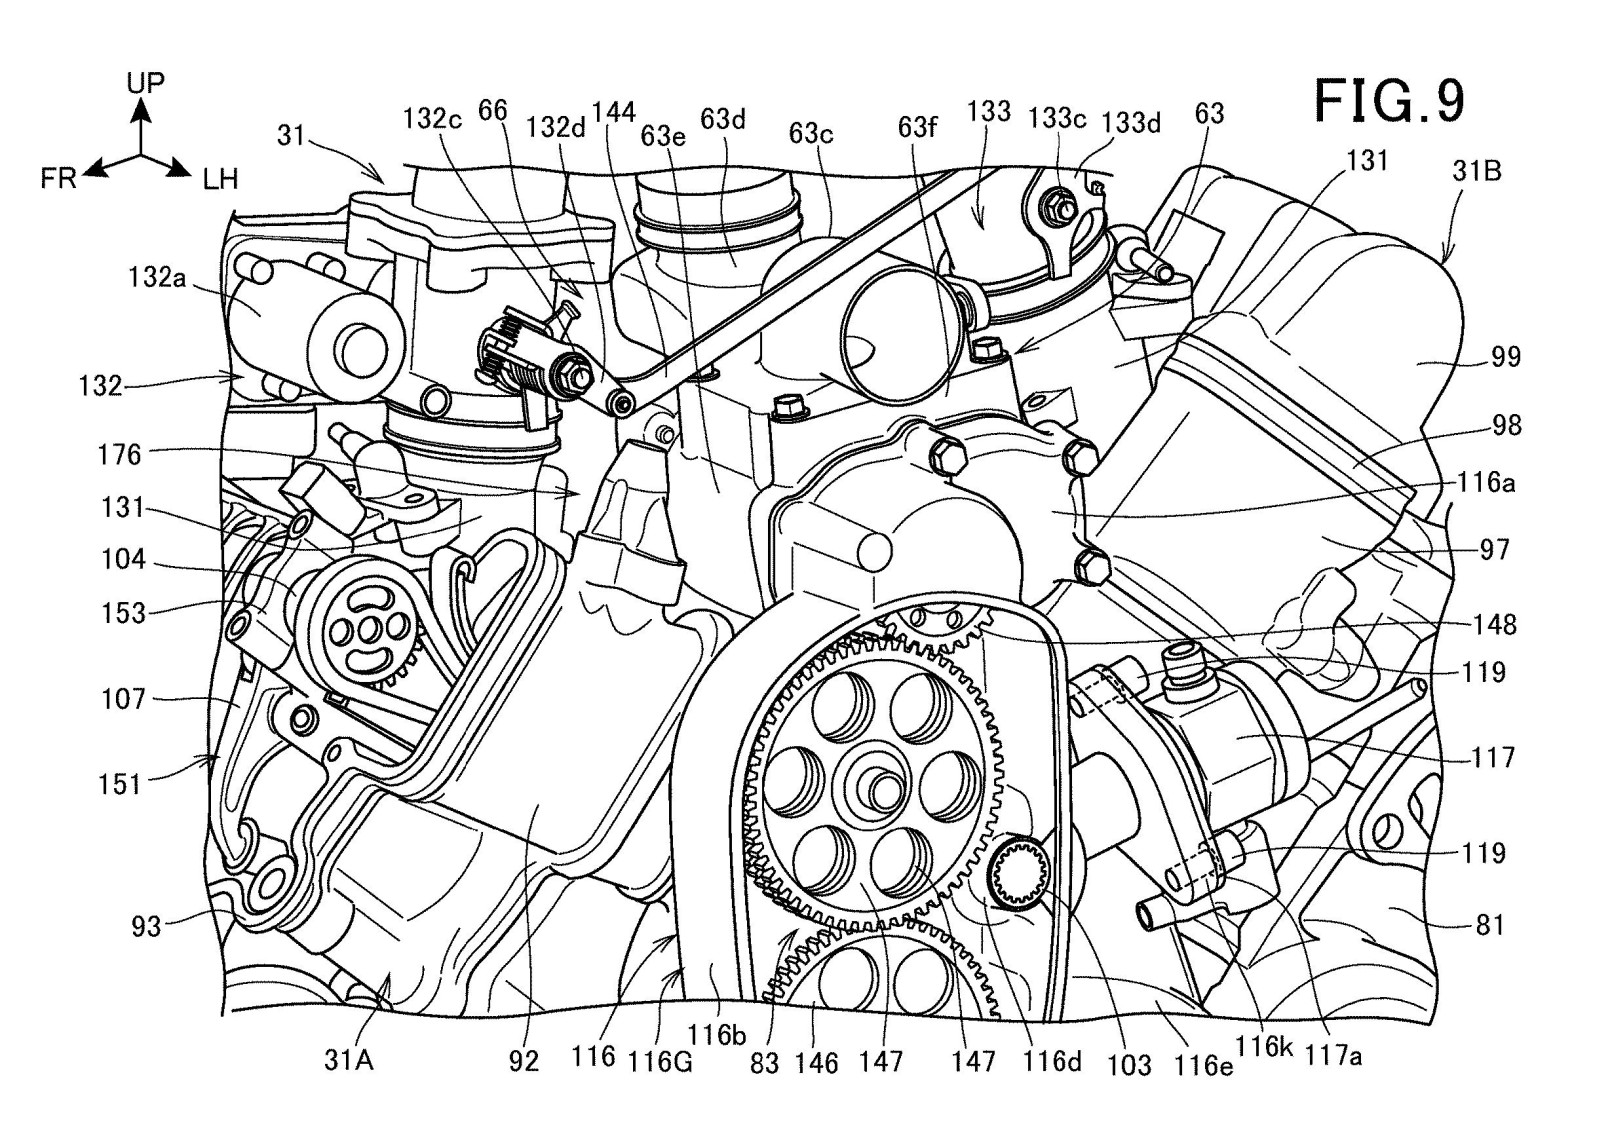 Leaked Patents Reveal Honda S Supercharged V Twin Engine With Direct Injection